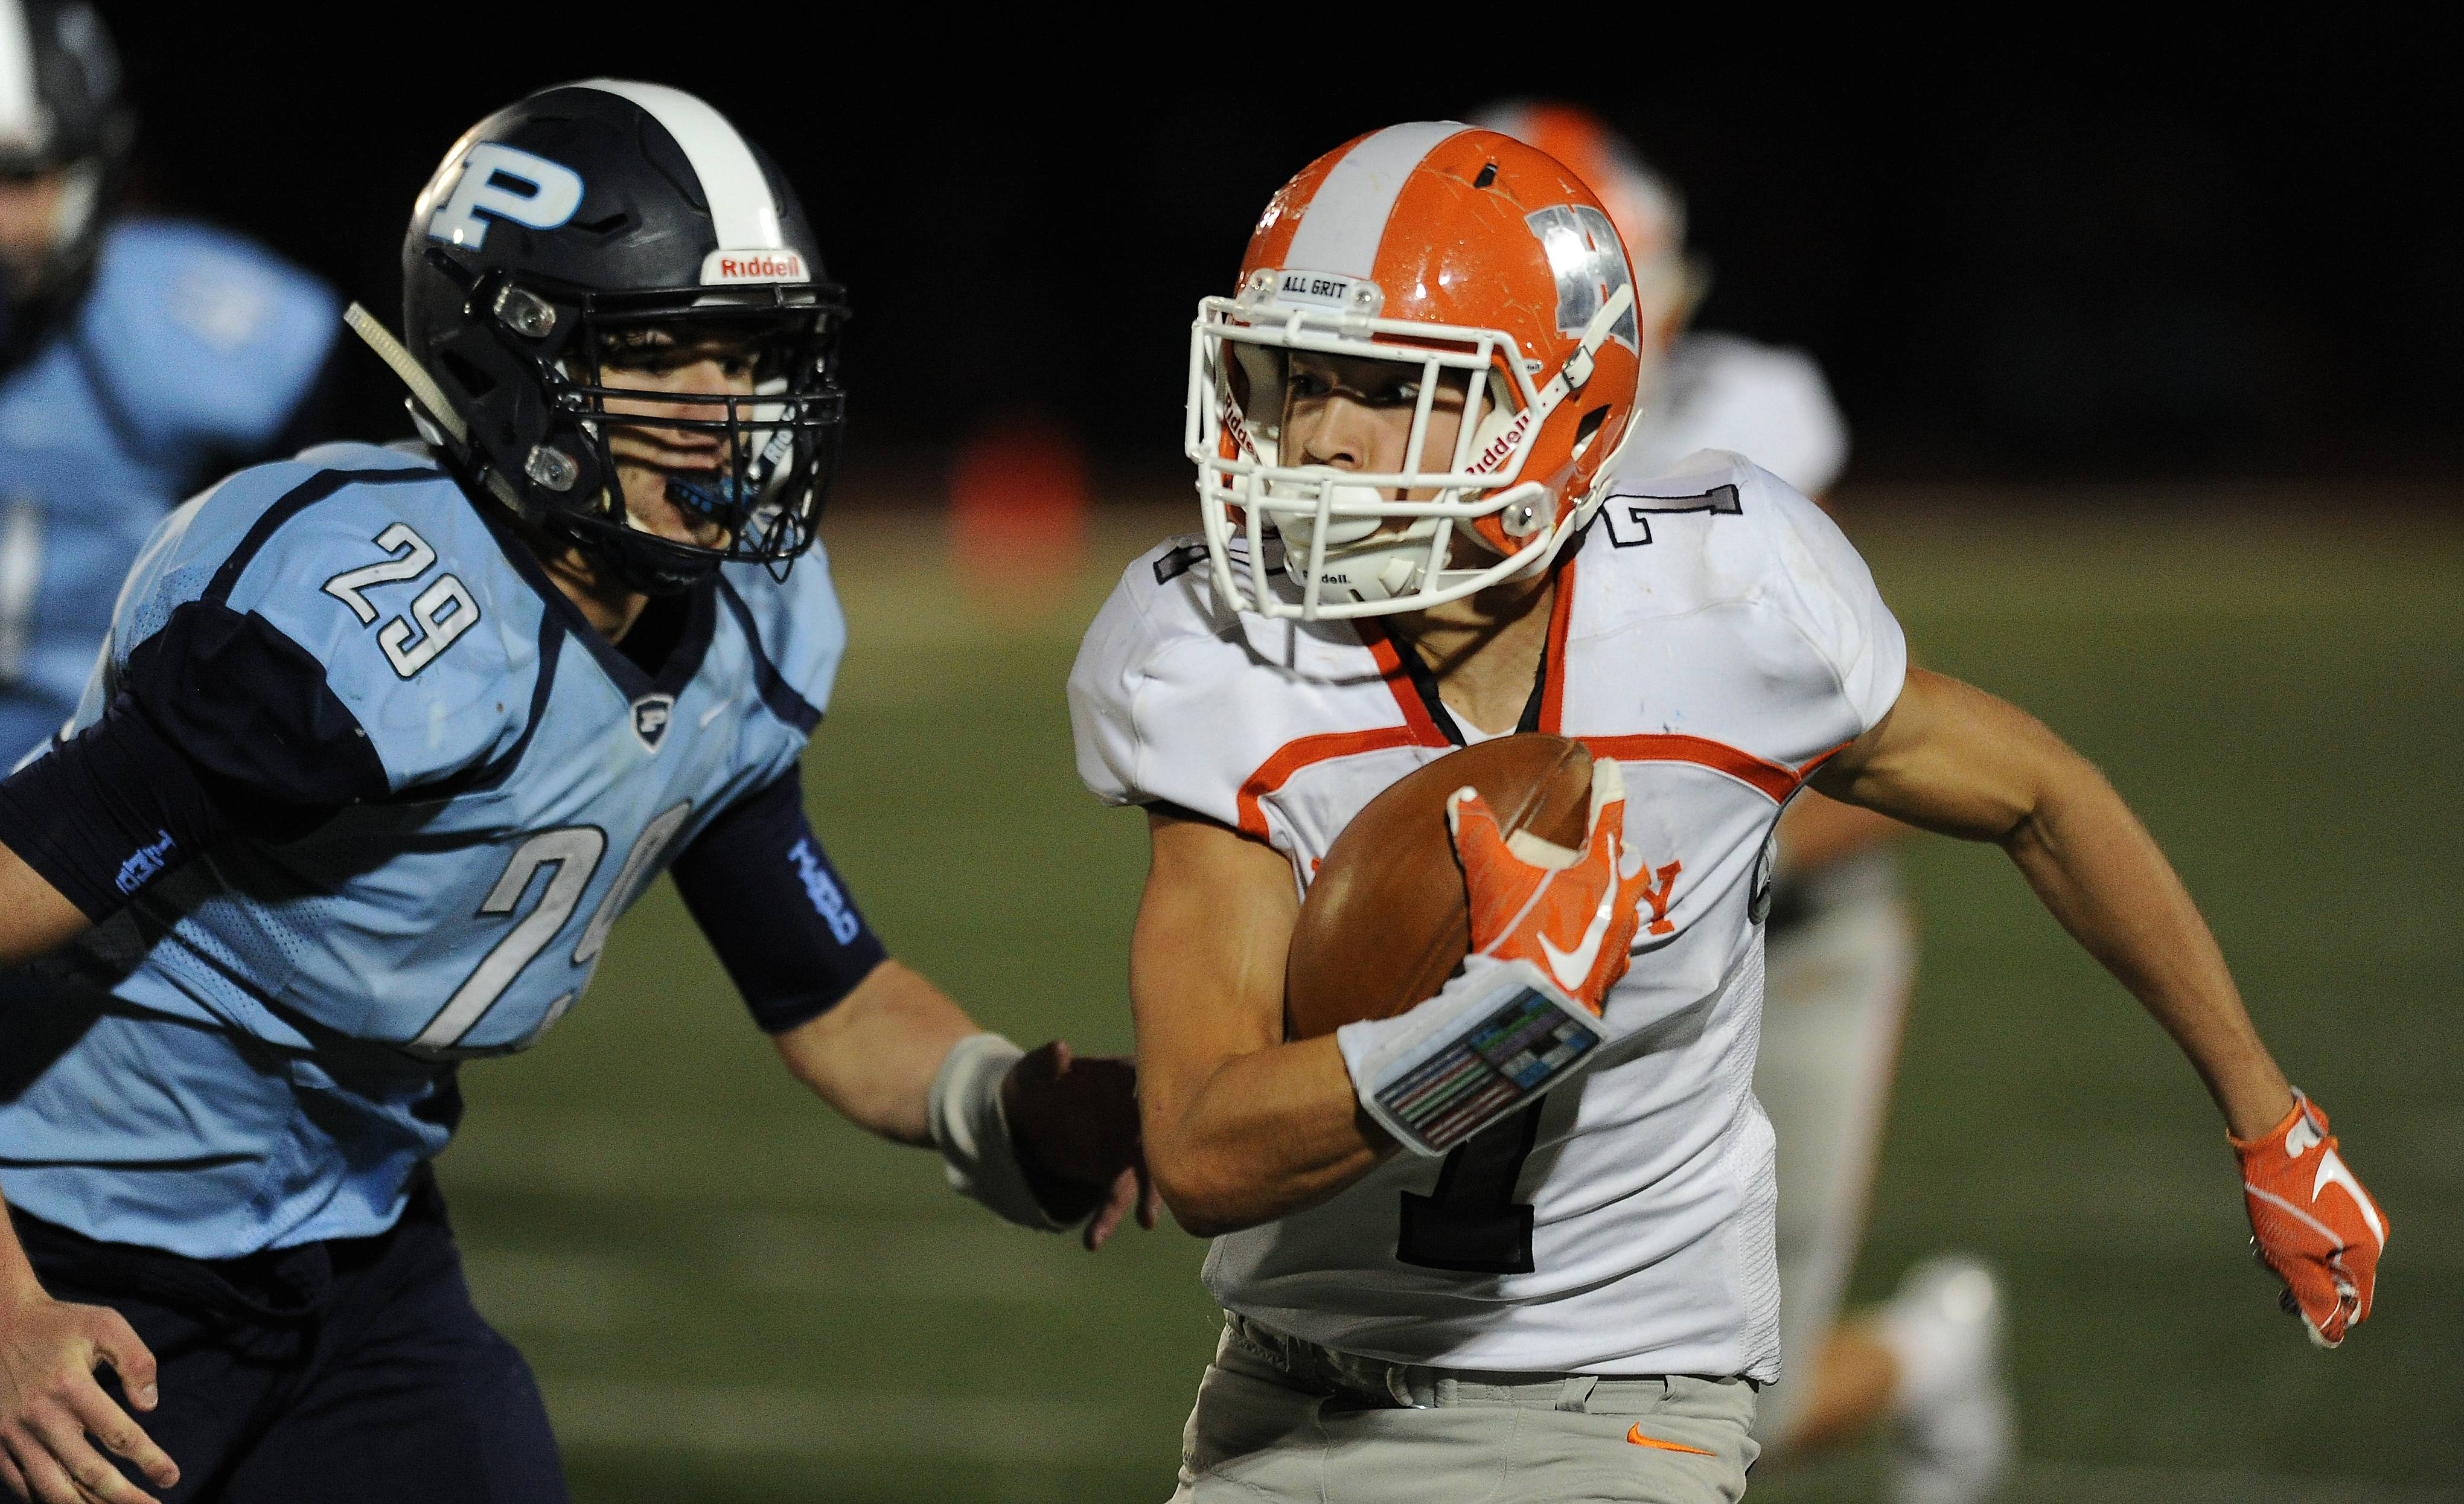 Hersey's Kapcer Rutkiewicz gains yardage  against Prospect earlier this season. Undefeated Hersey travels to undefeated Rolling Meadows Friday.